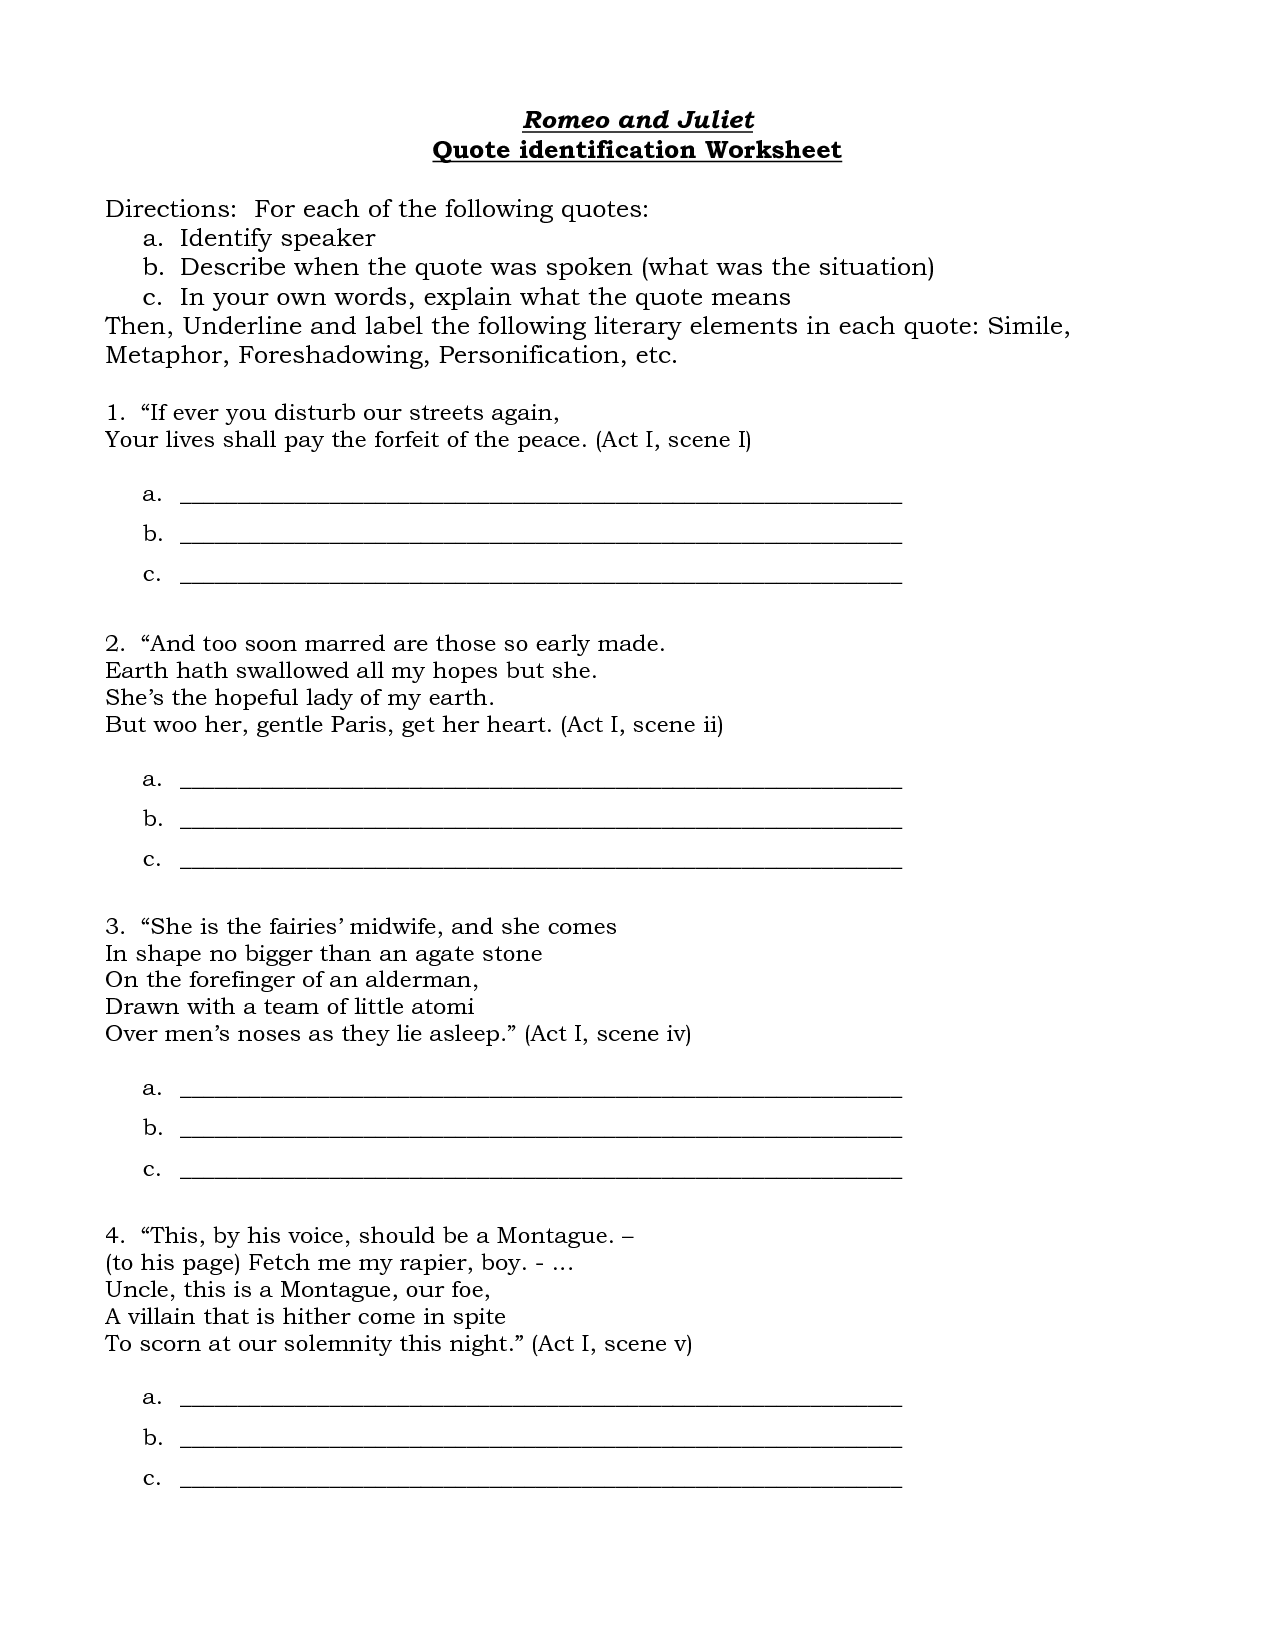 Free Worksheet Foreshadowing Worksheets romeo and juliet foreshadowing quotes quotesgram